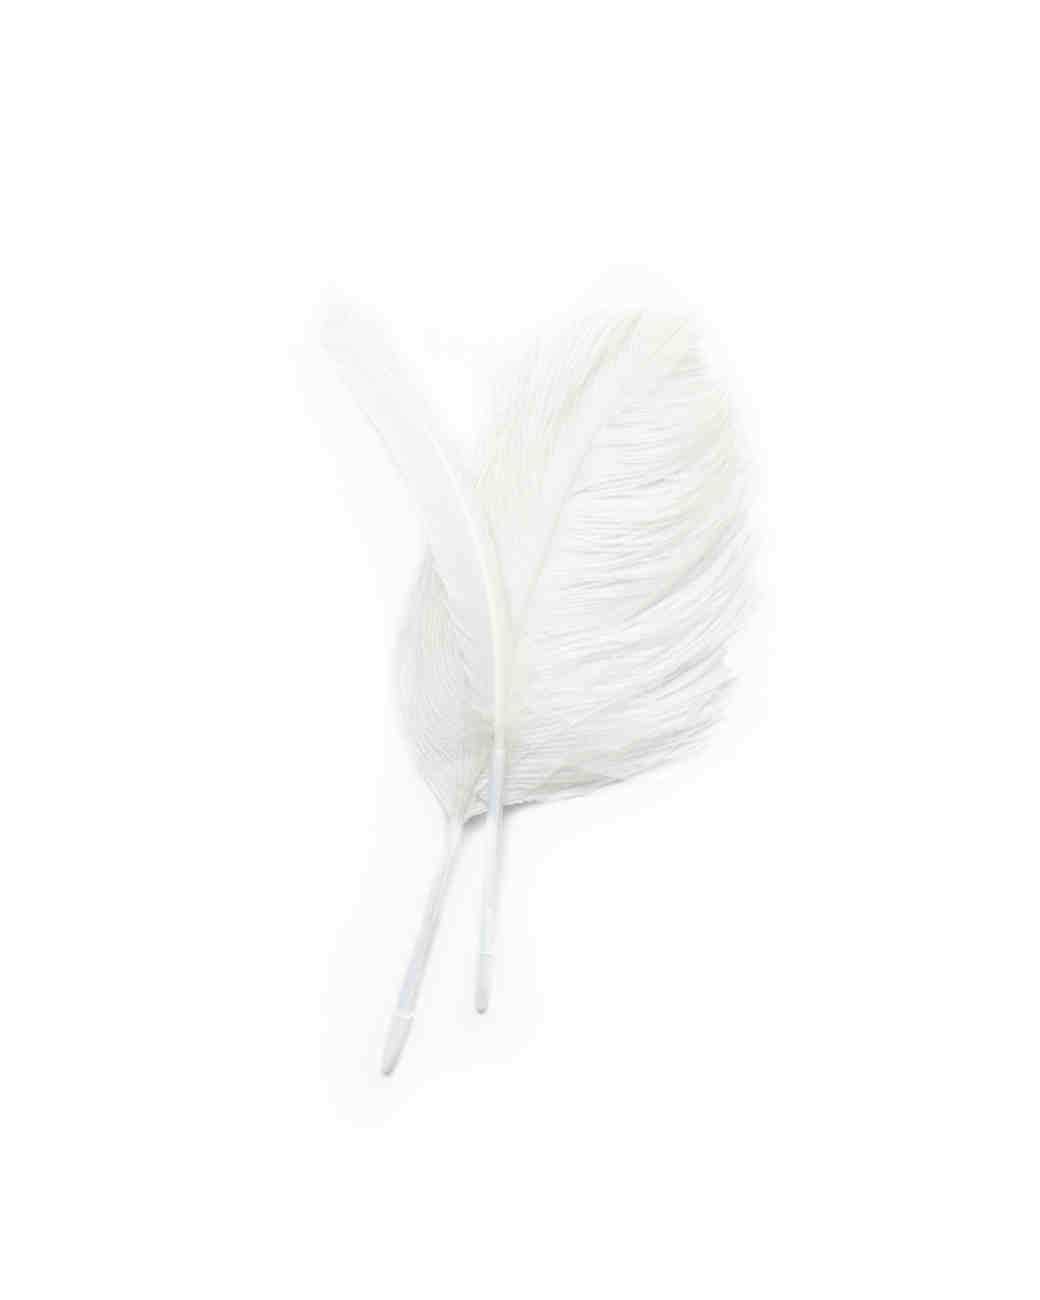 feather-wd108931.jpg